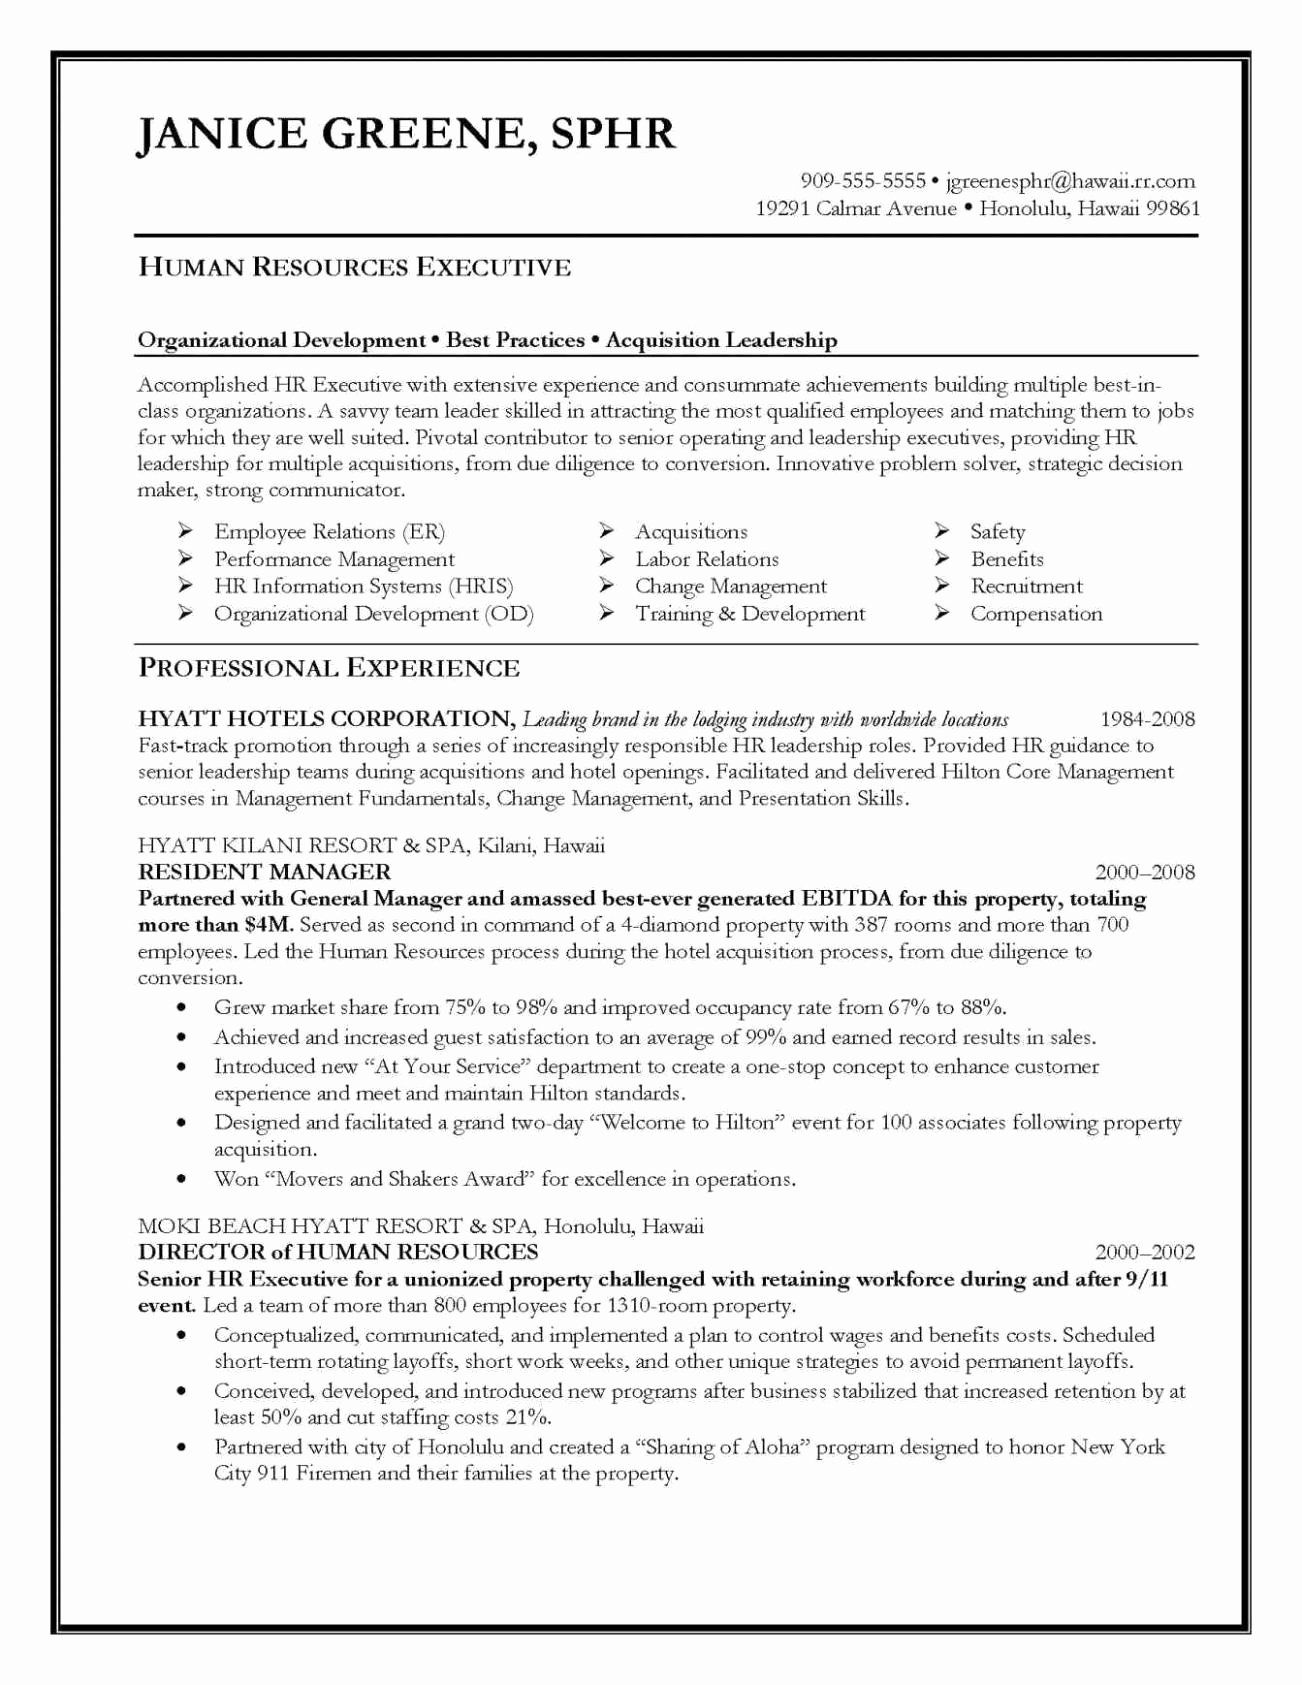 40 entry level web developer resume in 2020 microsoft word cv template 2018 career objective for administrative executive sample ojt industrial engineering students